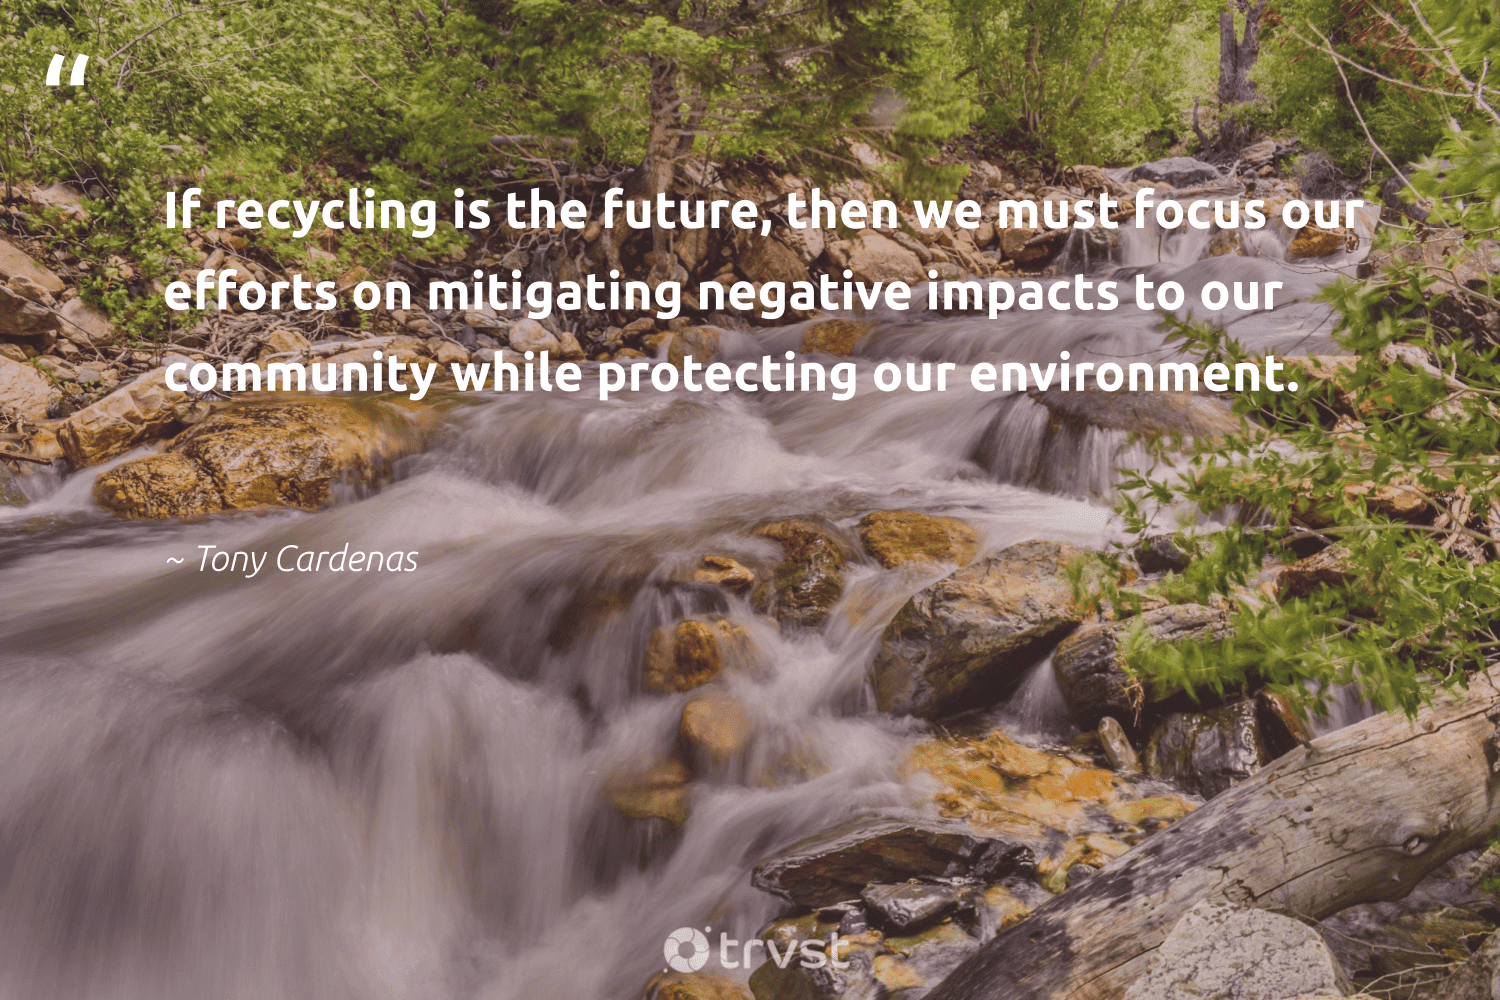 """""""If recycling is the future, then we must focus our efforts on mitigating negative impacts to our community while protecting our environment.""""  - Tony Cardenas #trvst #quotes #recycling #environment #impacts #focus #reducereuserecycle #wastefree #betterfortheplanet #socialimpact #refurbished #ecoconscious"""